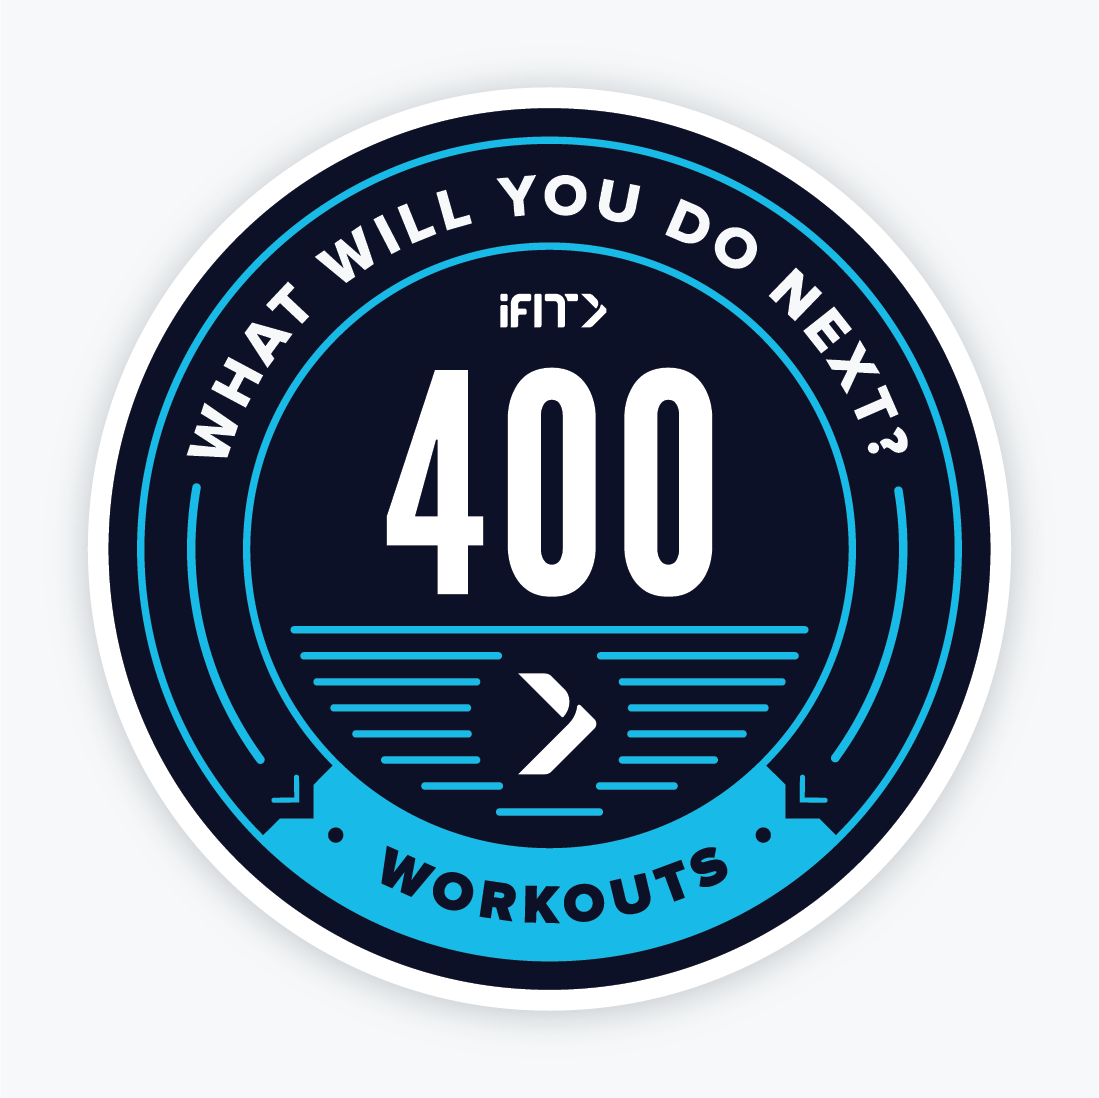 400 Workouts Magnet